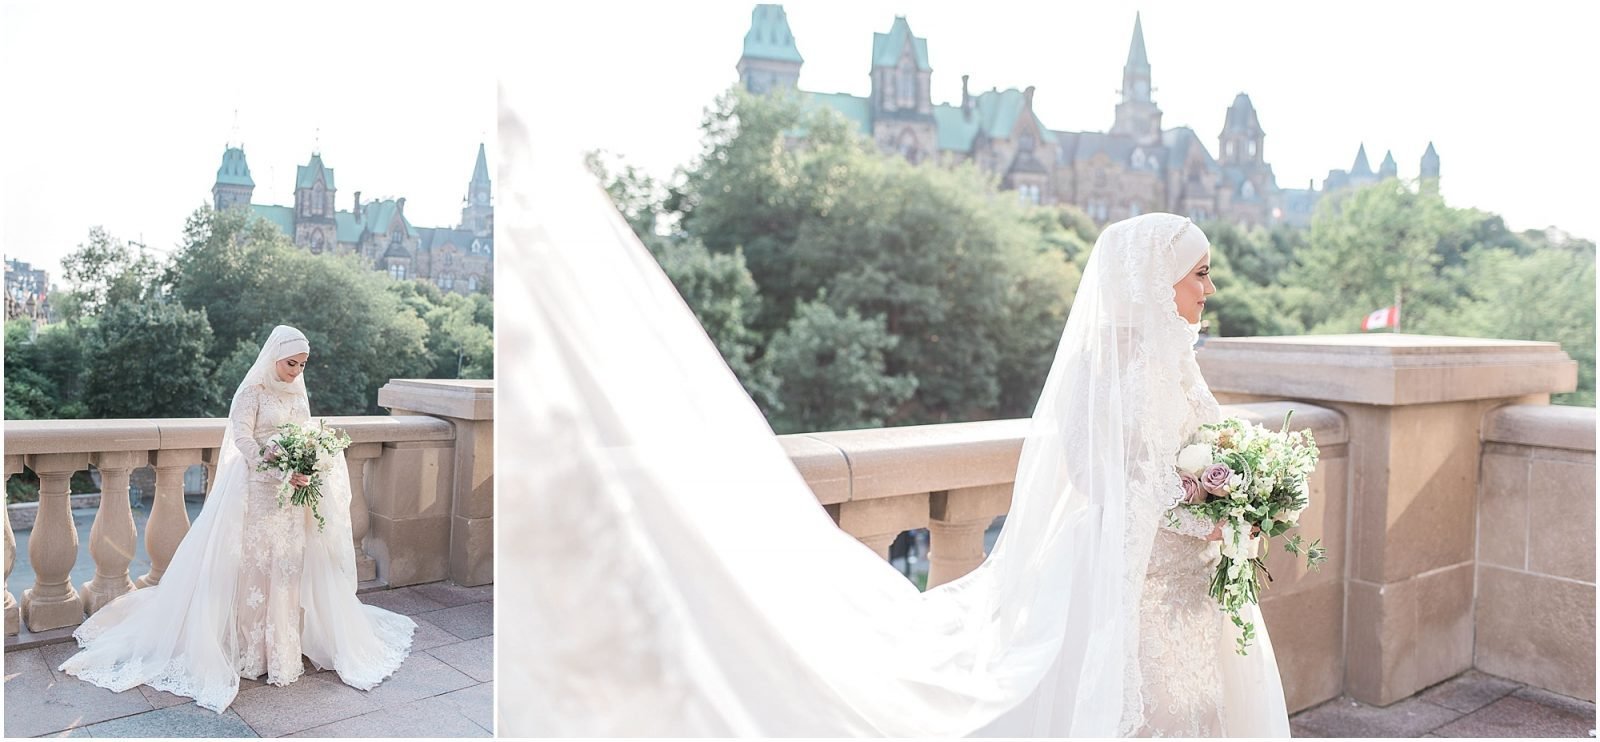 0025 Chateau Laurier Wedding - Hijabi Bride - Sireen & Anas- Ottawa_PhotosbyEmmaH.jpg